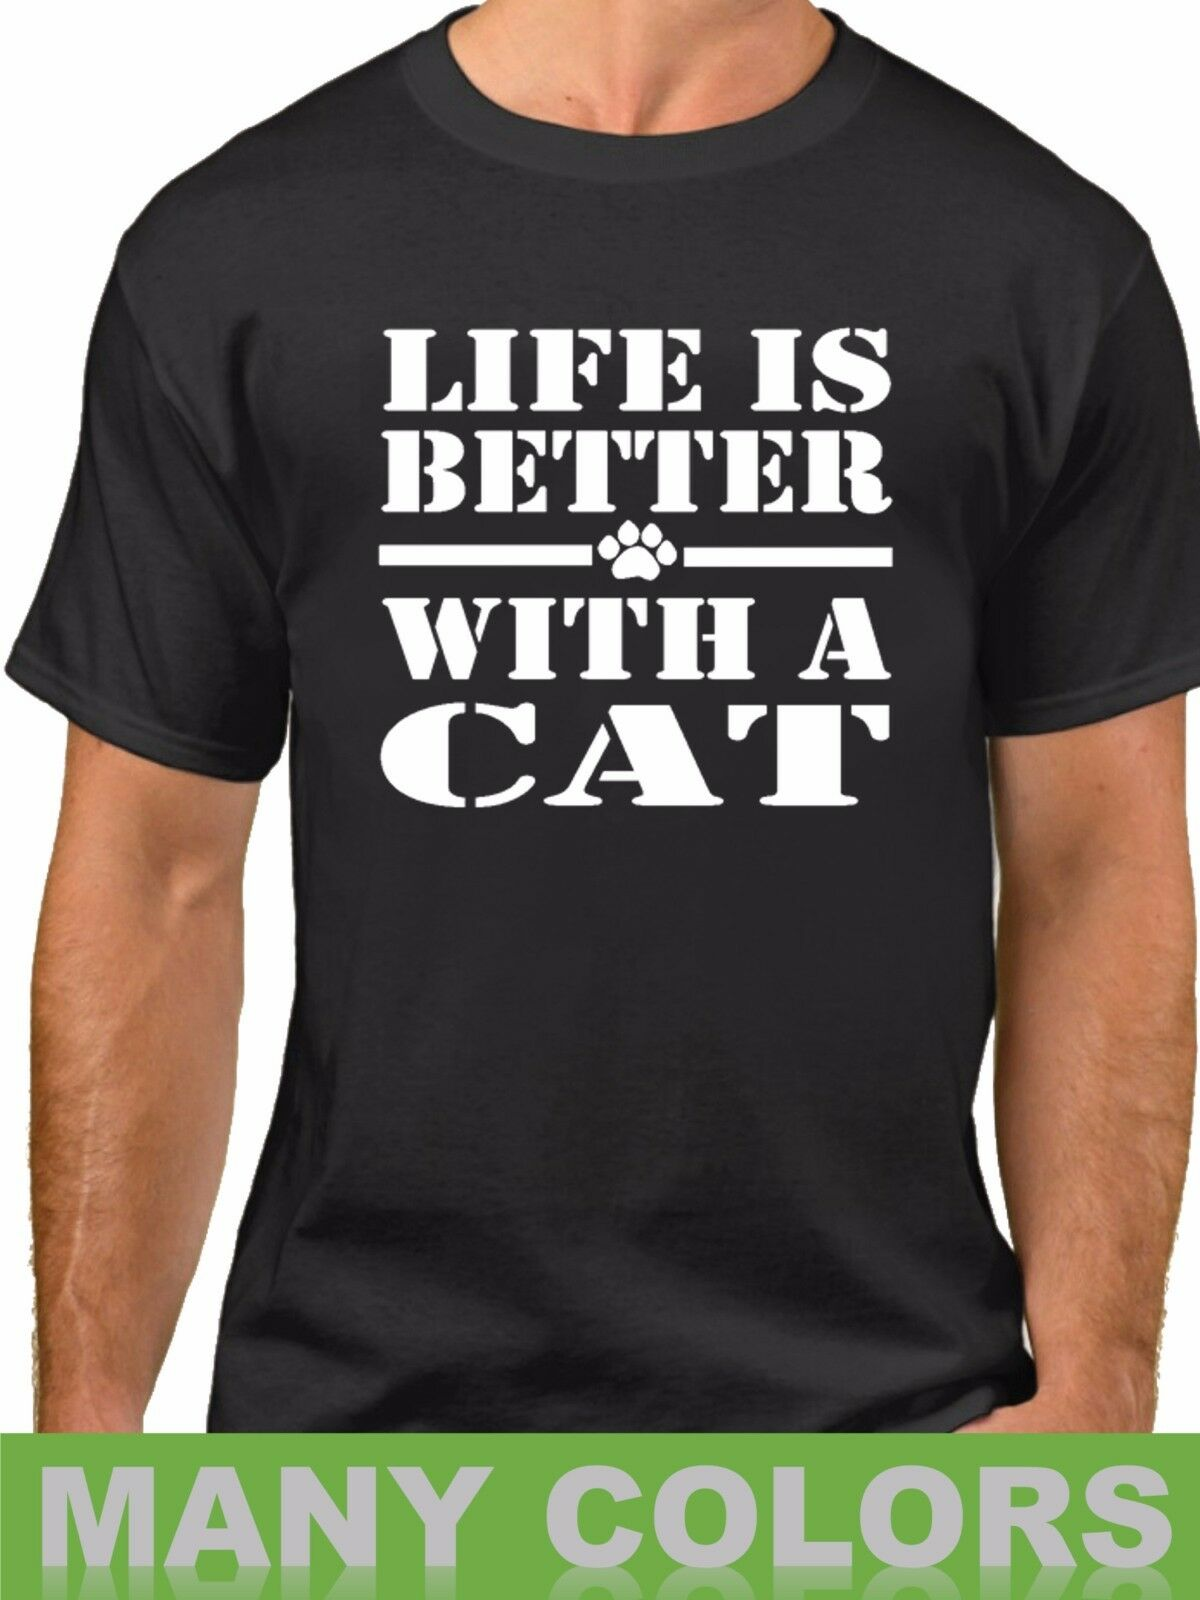 Life Is Better With A Cat Shirt Animal Rescue Pet Lovers T Shirt I Love My Cat2019 fashionable Brand 100%cotton Printed Round Ne